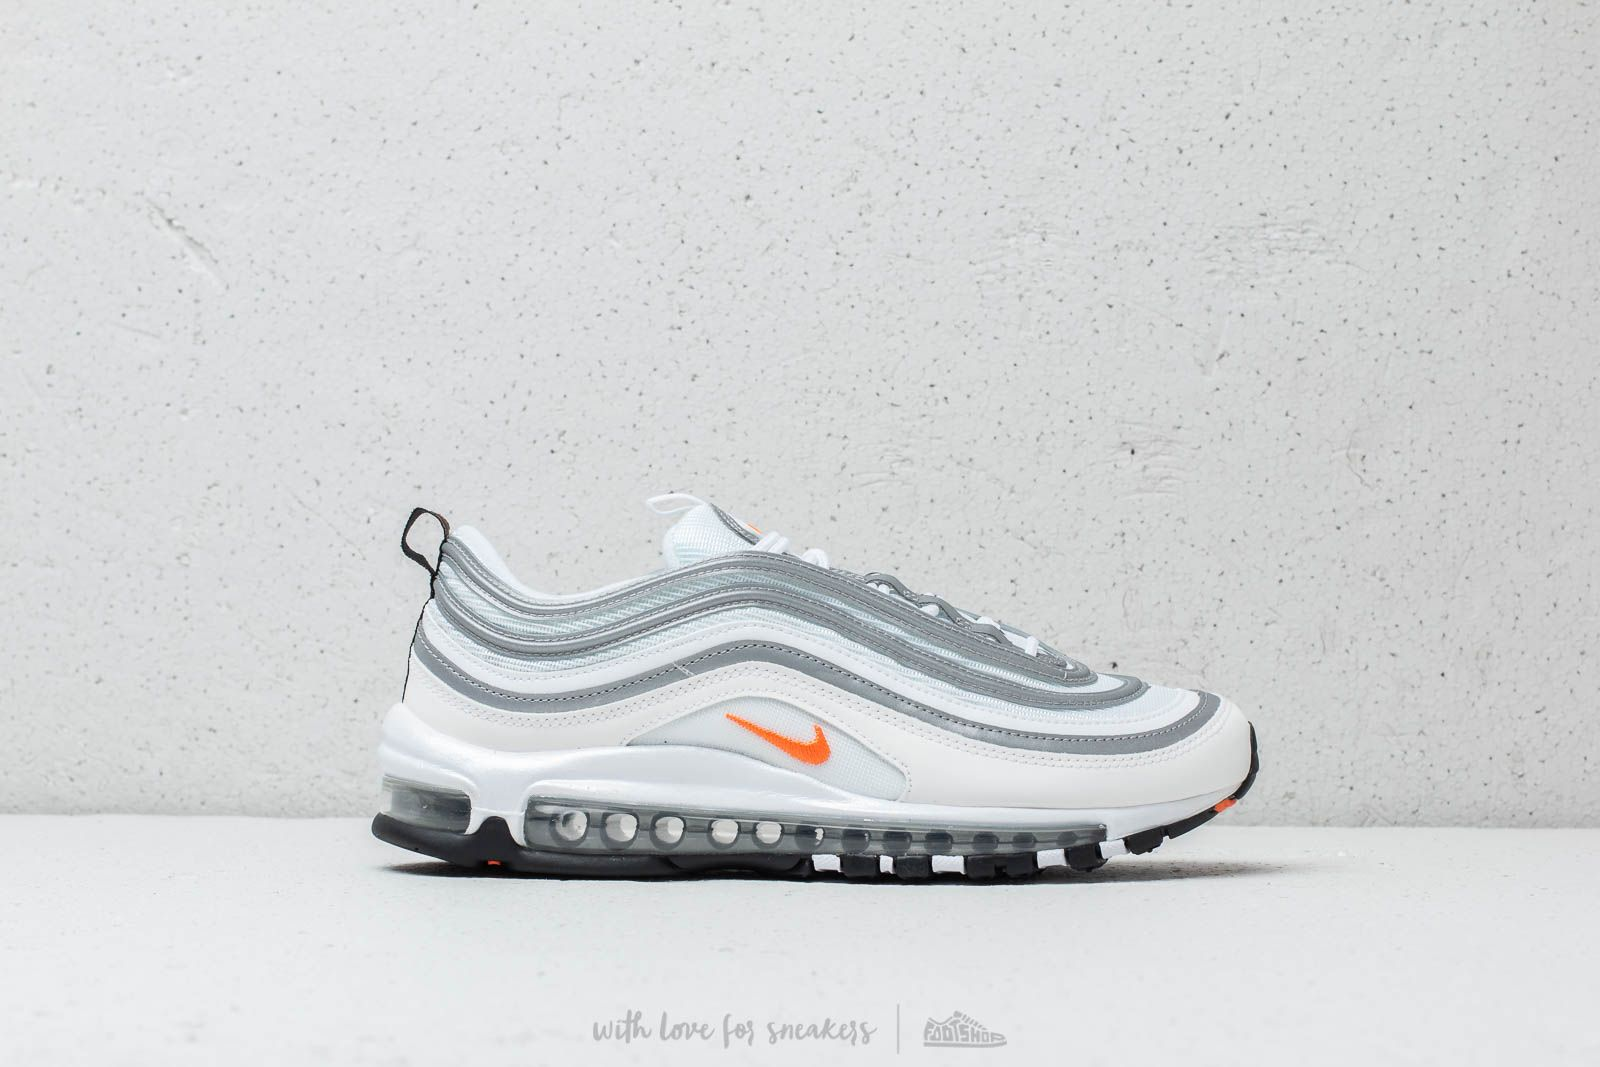 finest selection 6de2b 52235 Nike Air Max 97 White  Cone- Metallic Silver at a great price 180 €